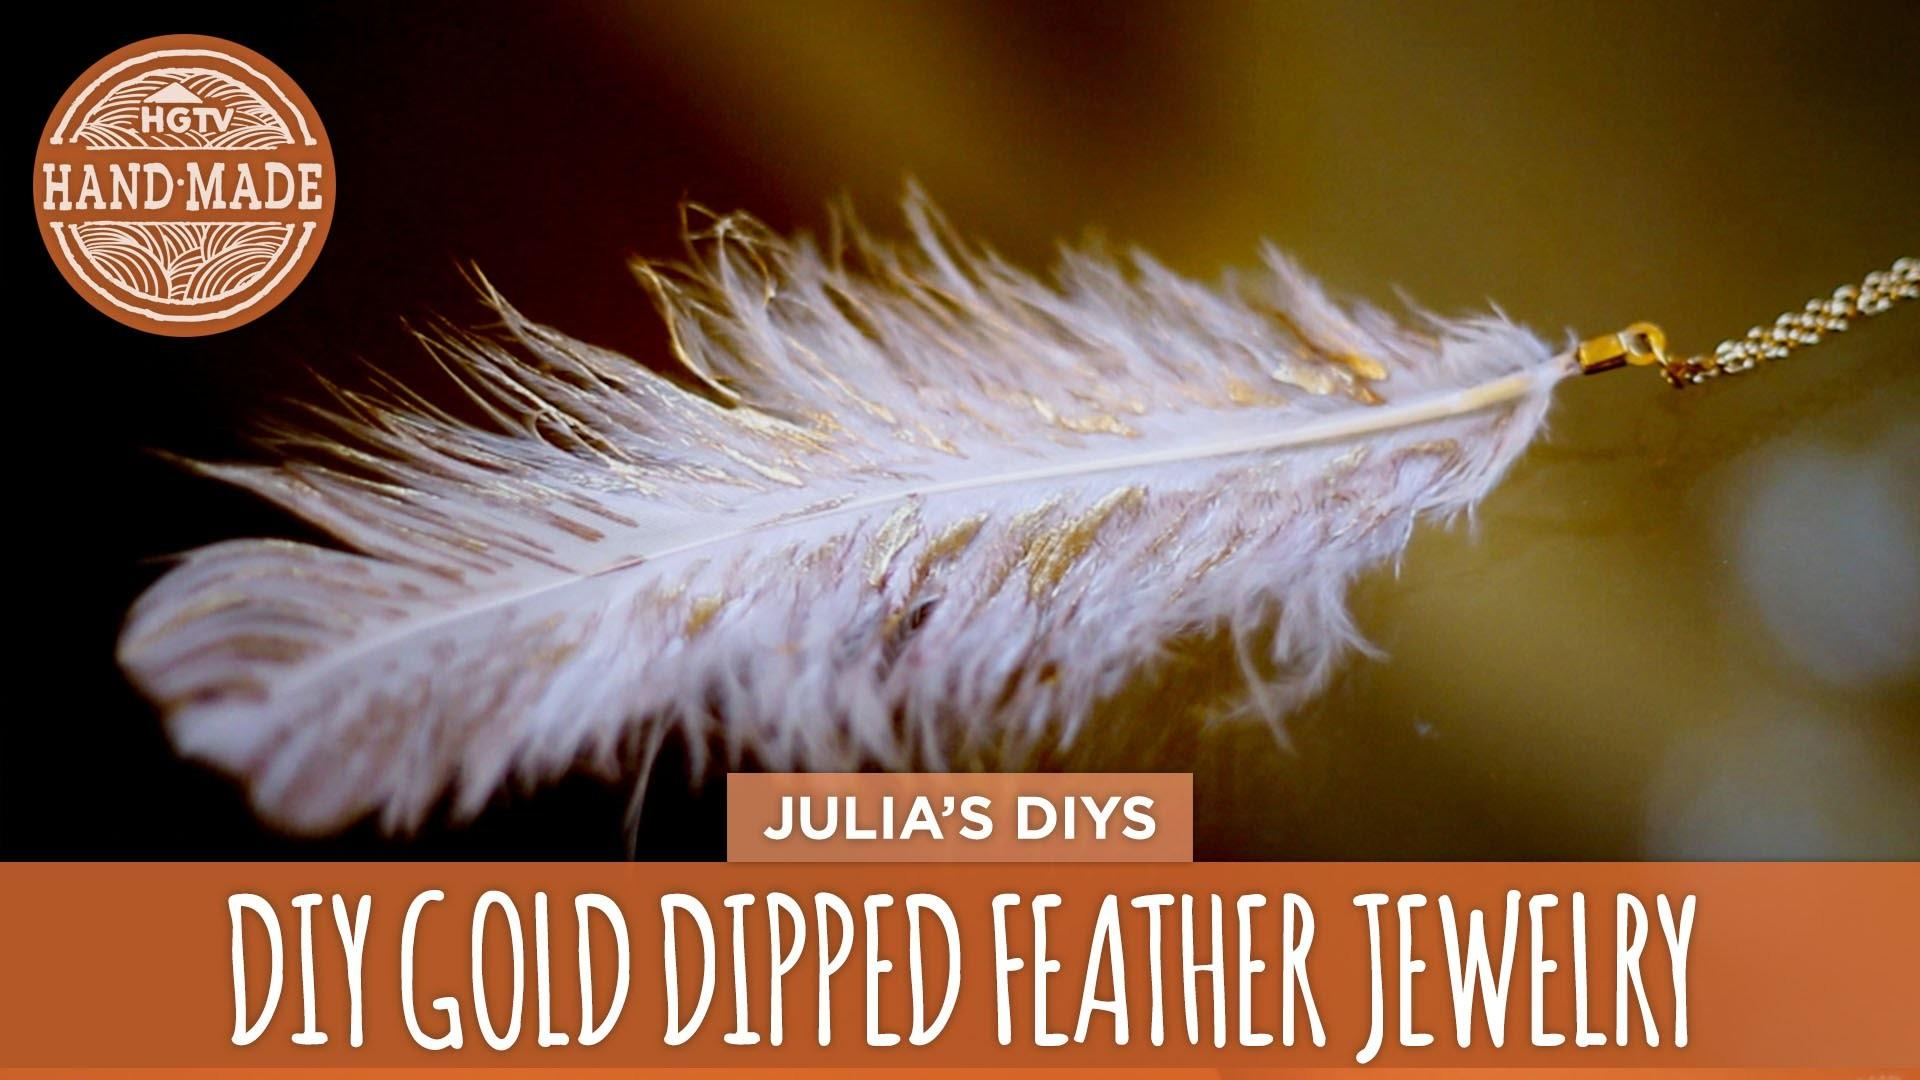 Diy Gold Dipped Feather Jewelry Handmade